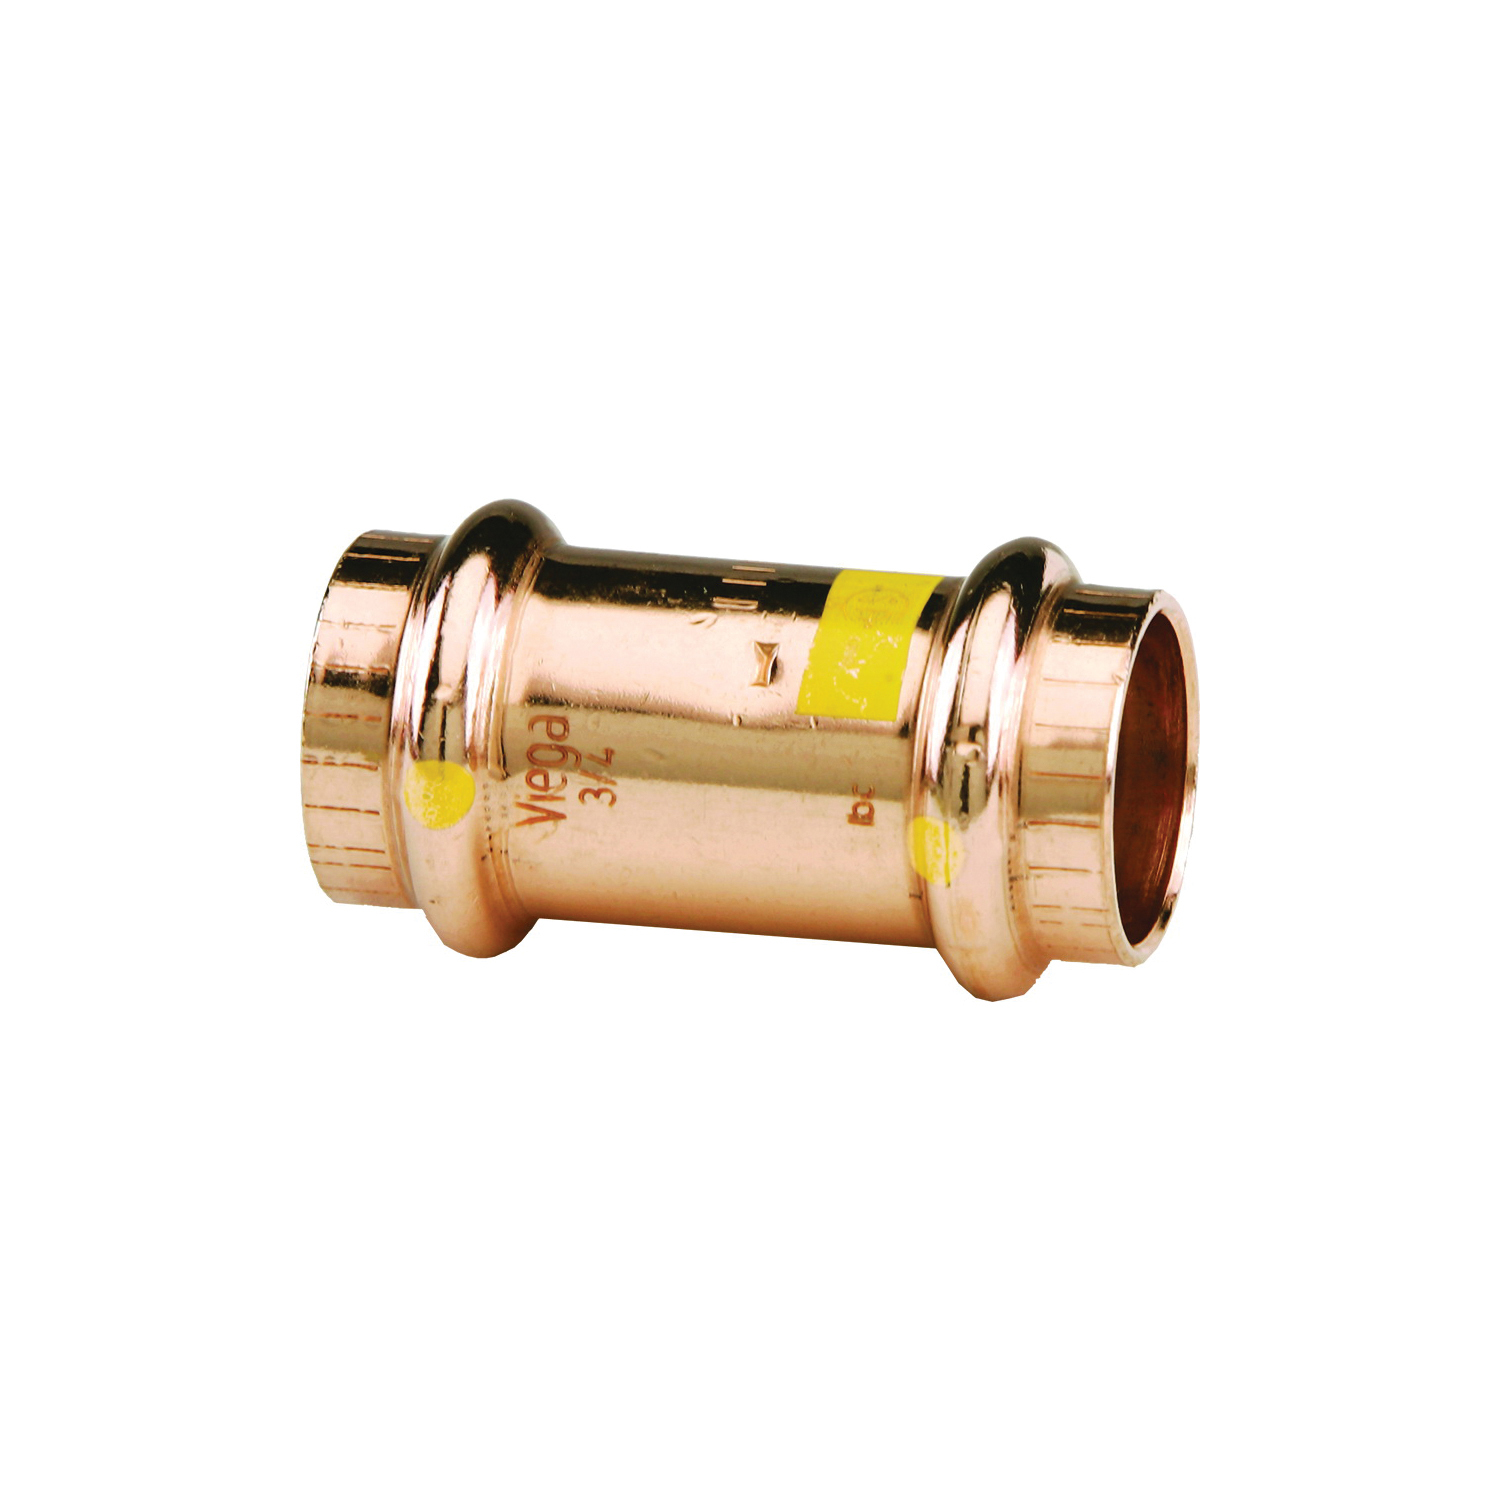 ProPress®G 16098 Pipe Coupling With Stop, 1/2 in Nominal, Press End Style, Copper, Import